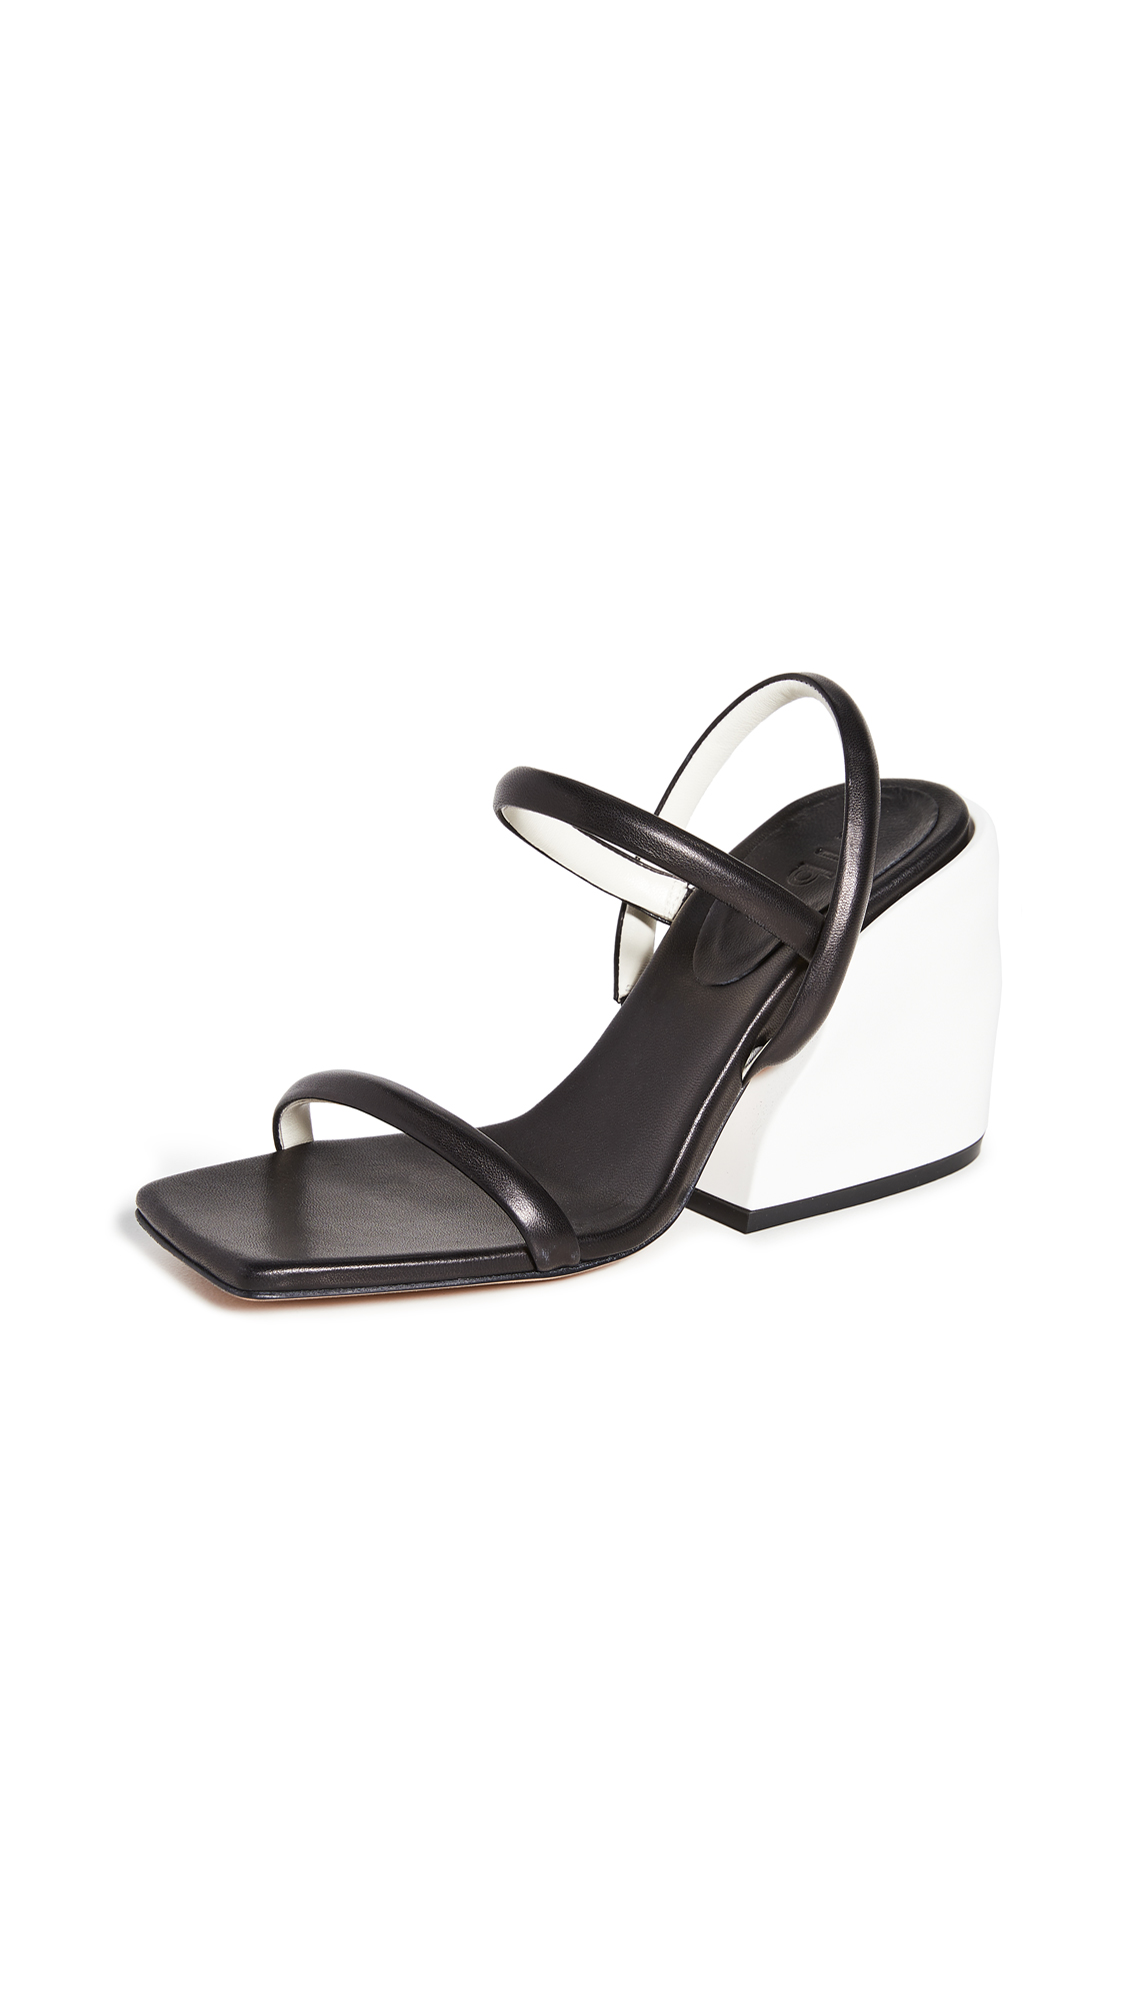 Tibi Miko Sandals – 50% Off Sale